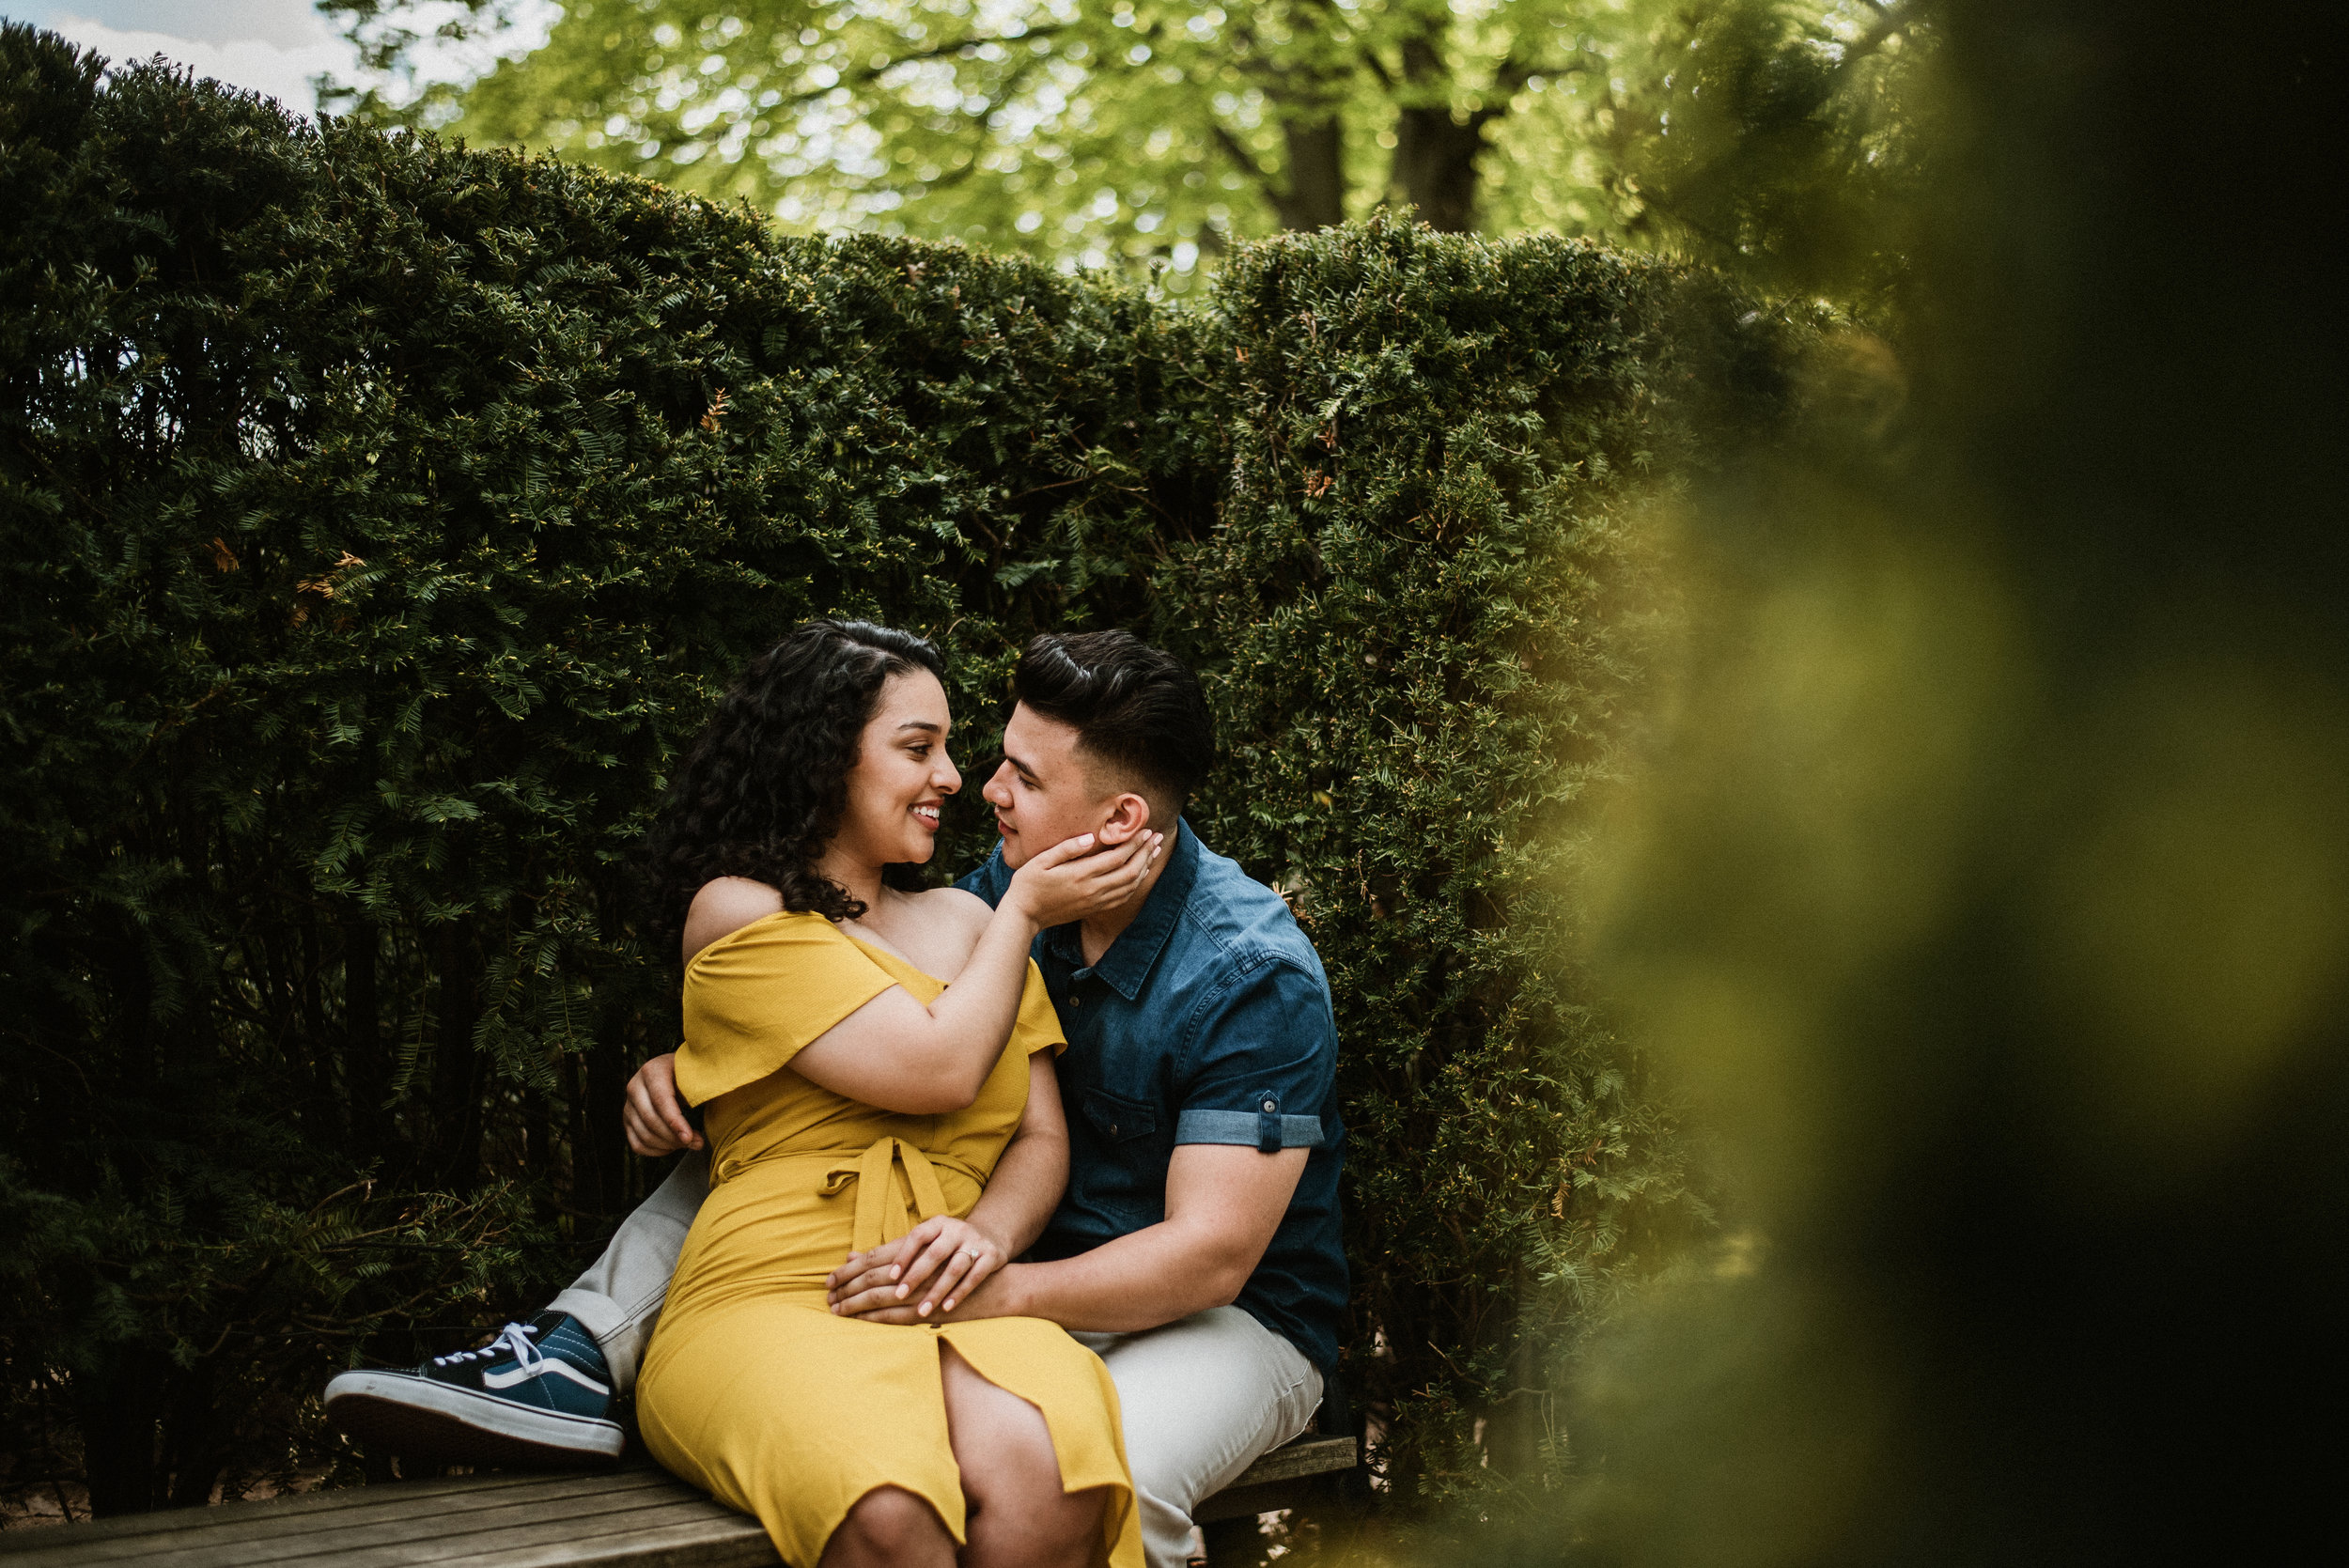 Elizabeth and Arik - Spring Engagement Session | The Morton Arboretum | Lisle, IL